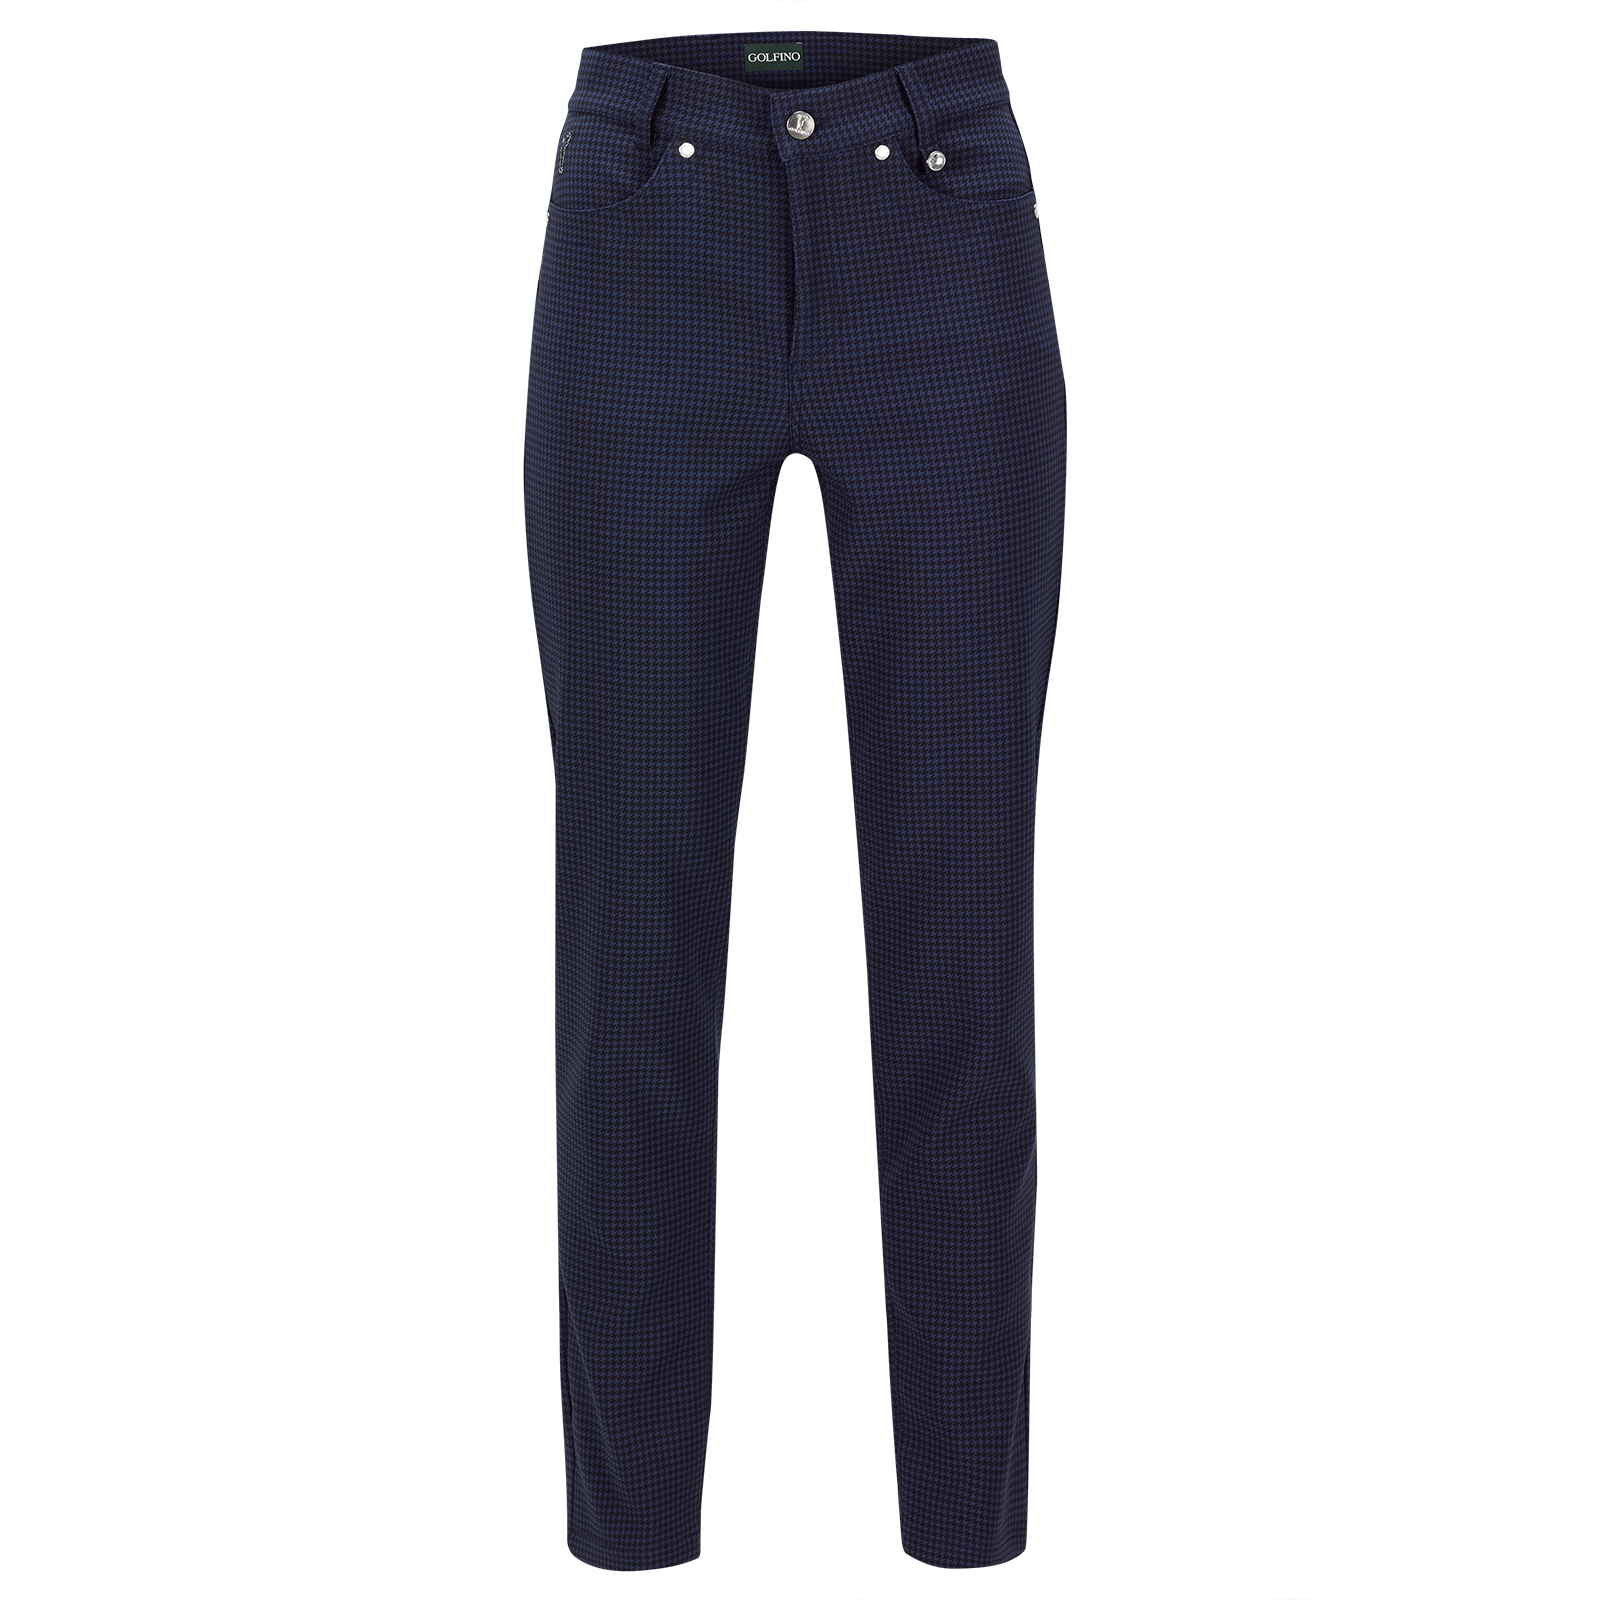 Ladies' 7/8 slim fit stretch trousers from functional material with stylish print